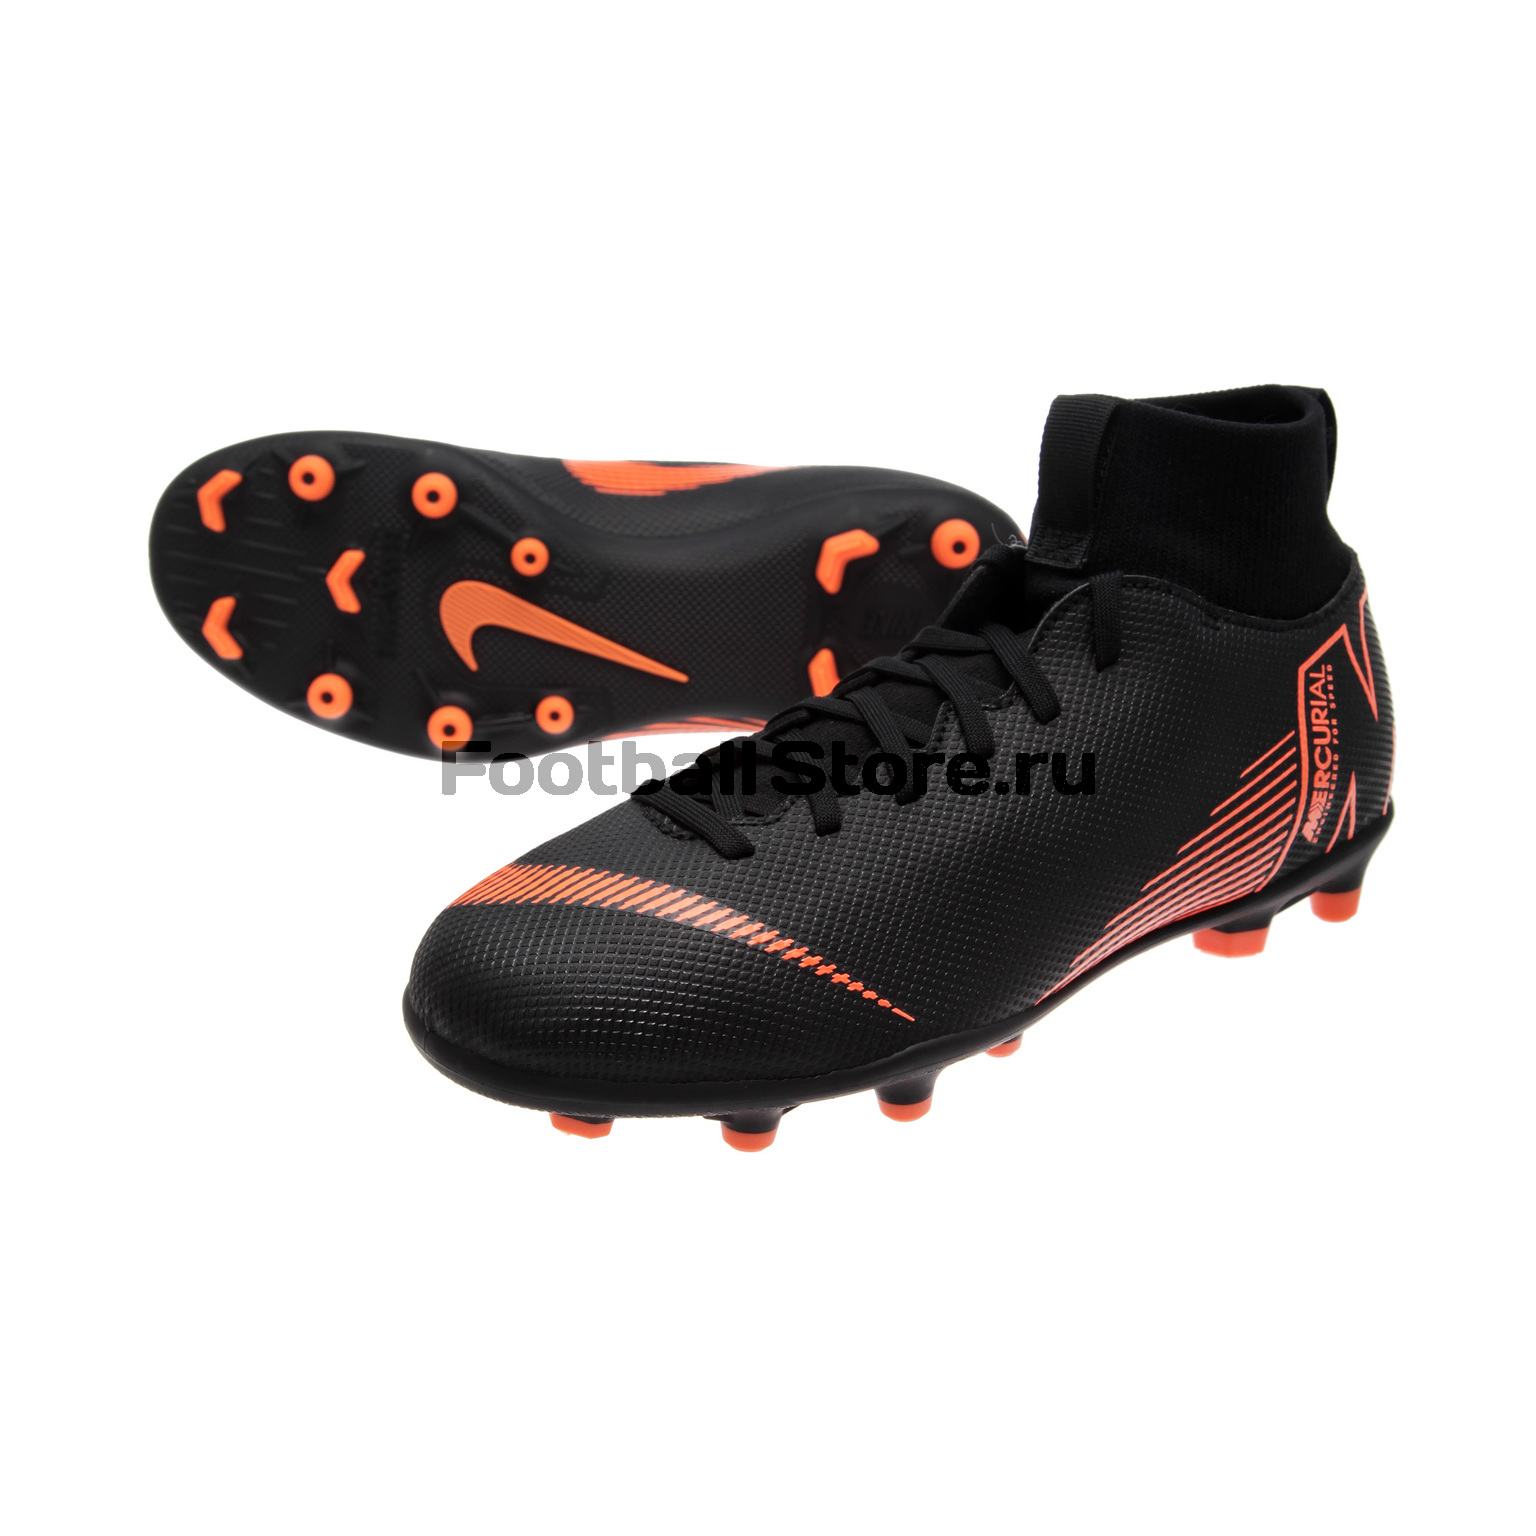 Бутсы Nike JR Superfly 6 Club FG/MG AH7339-081 детские бутсы nike бутсы nike jr phantom 3 elite df fg ah7292 081